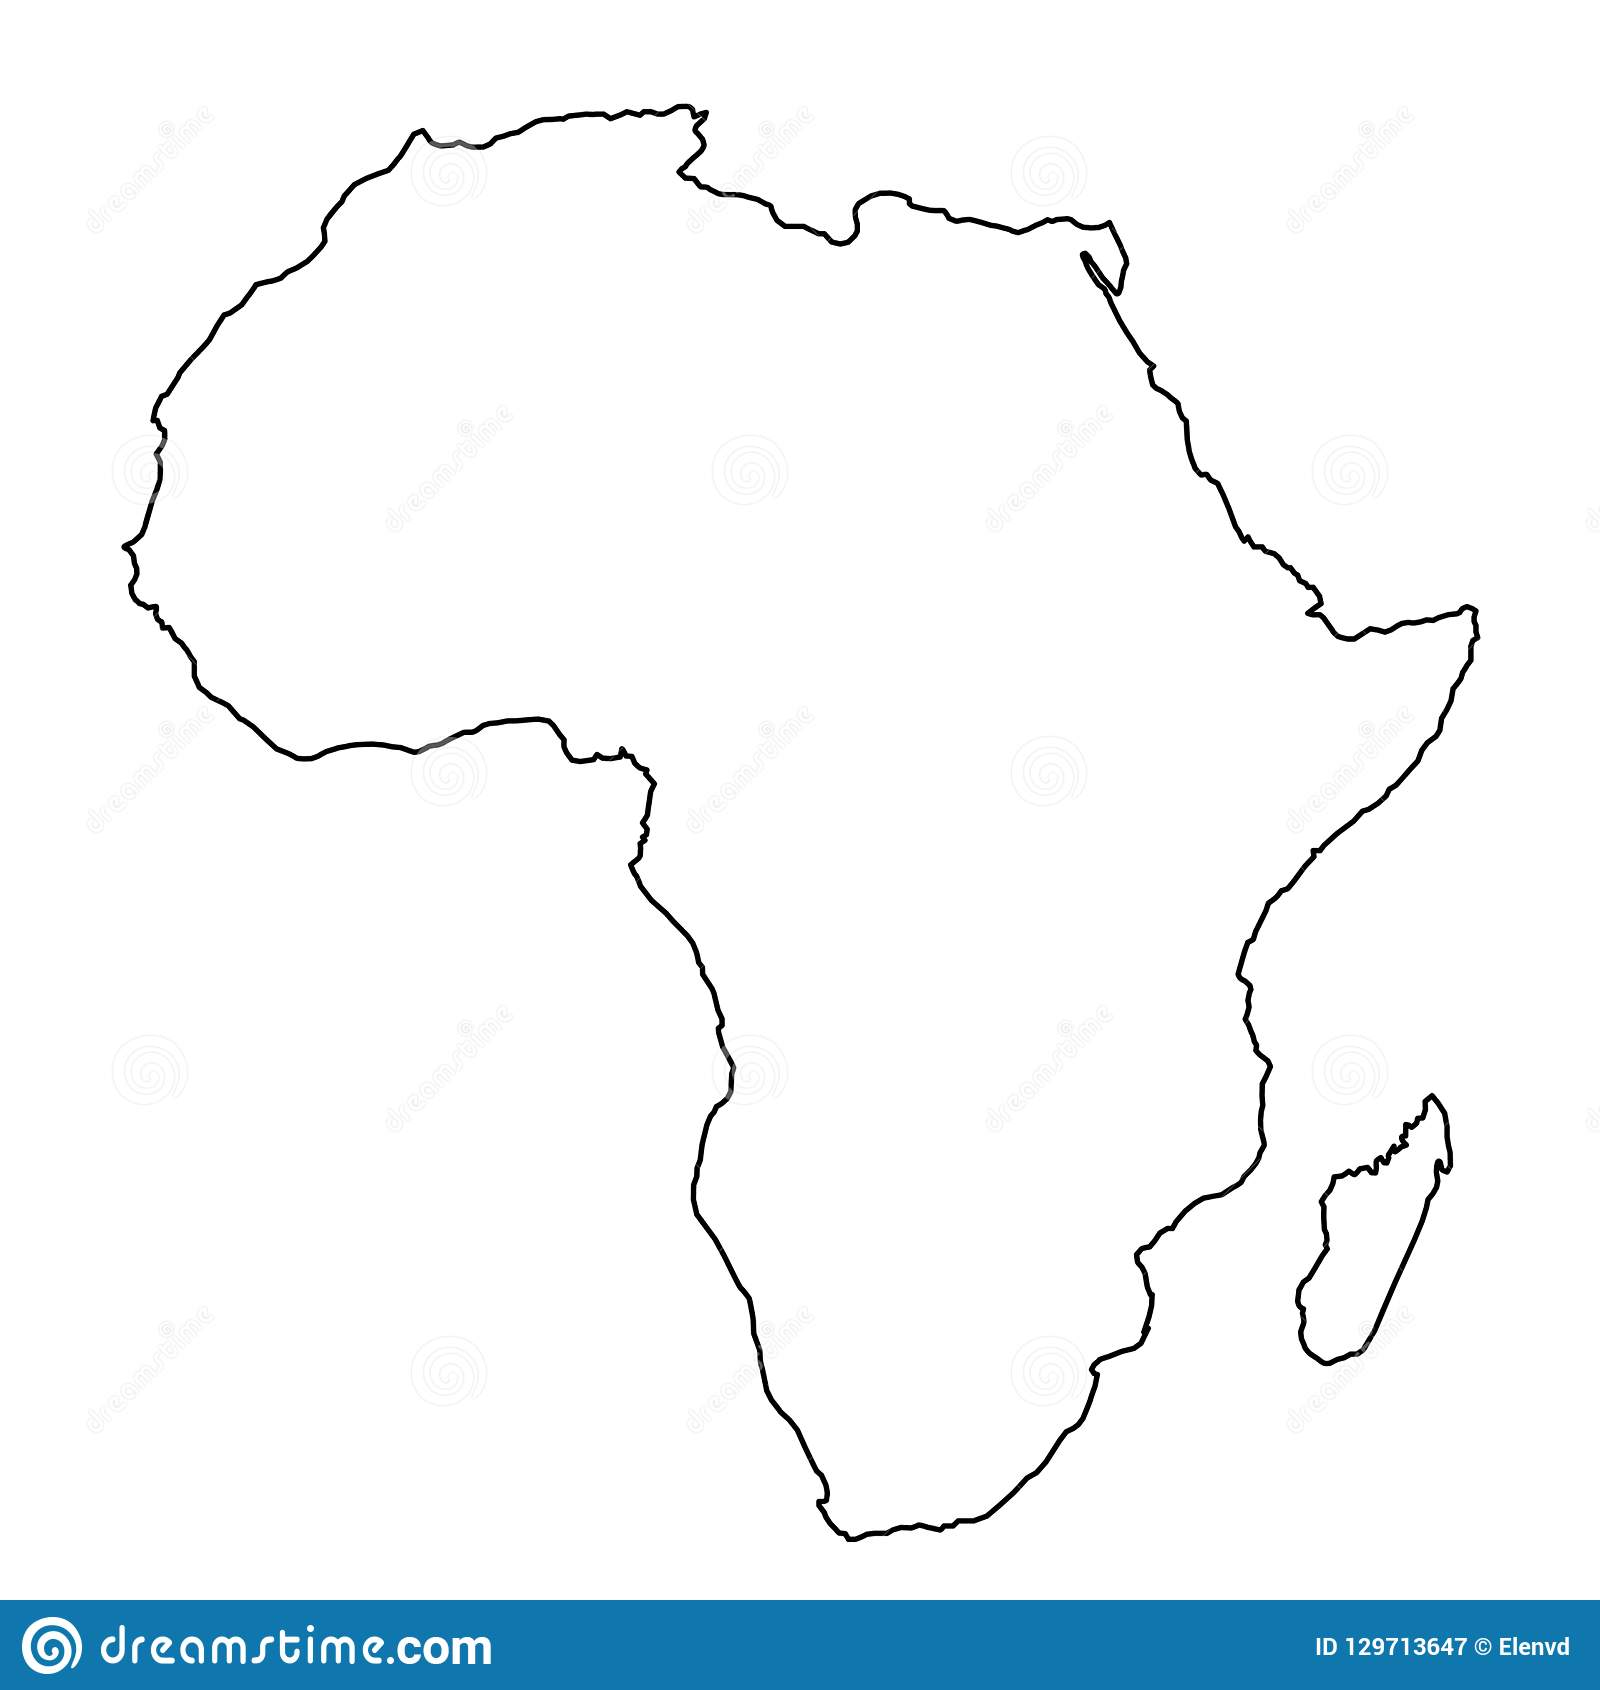 Africa Map From Black Contour Curves Lines On White Background